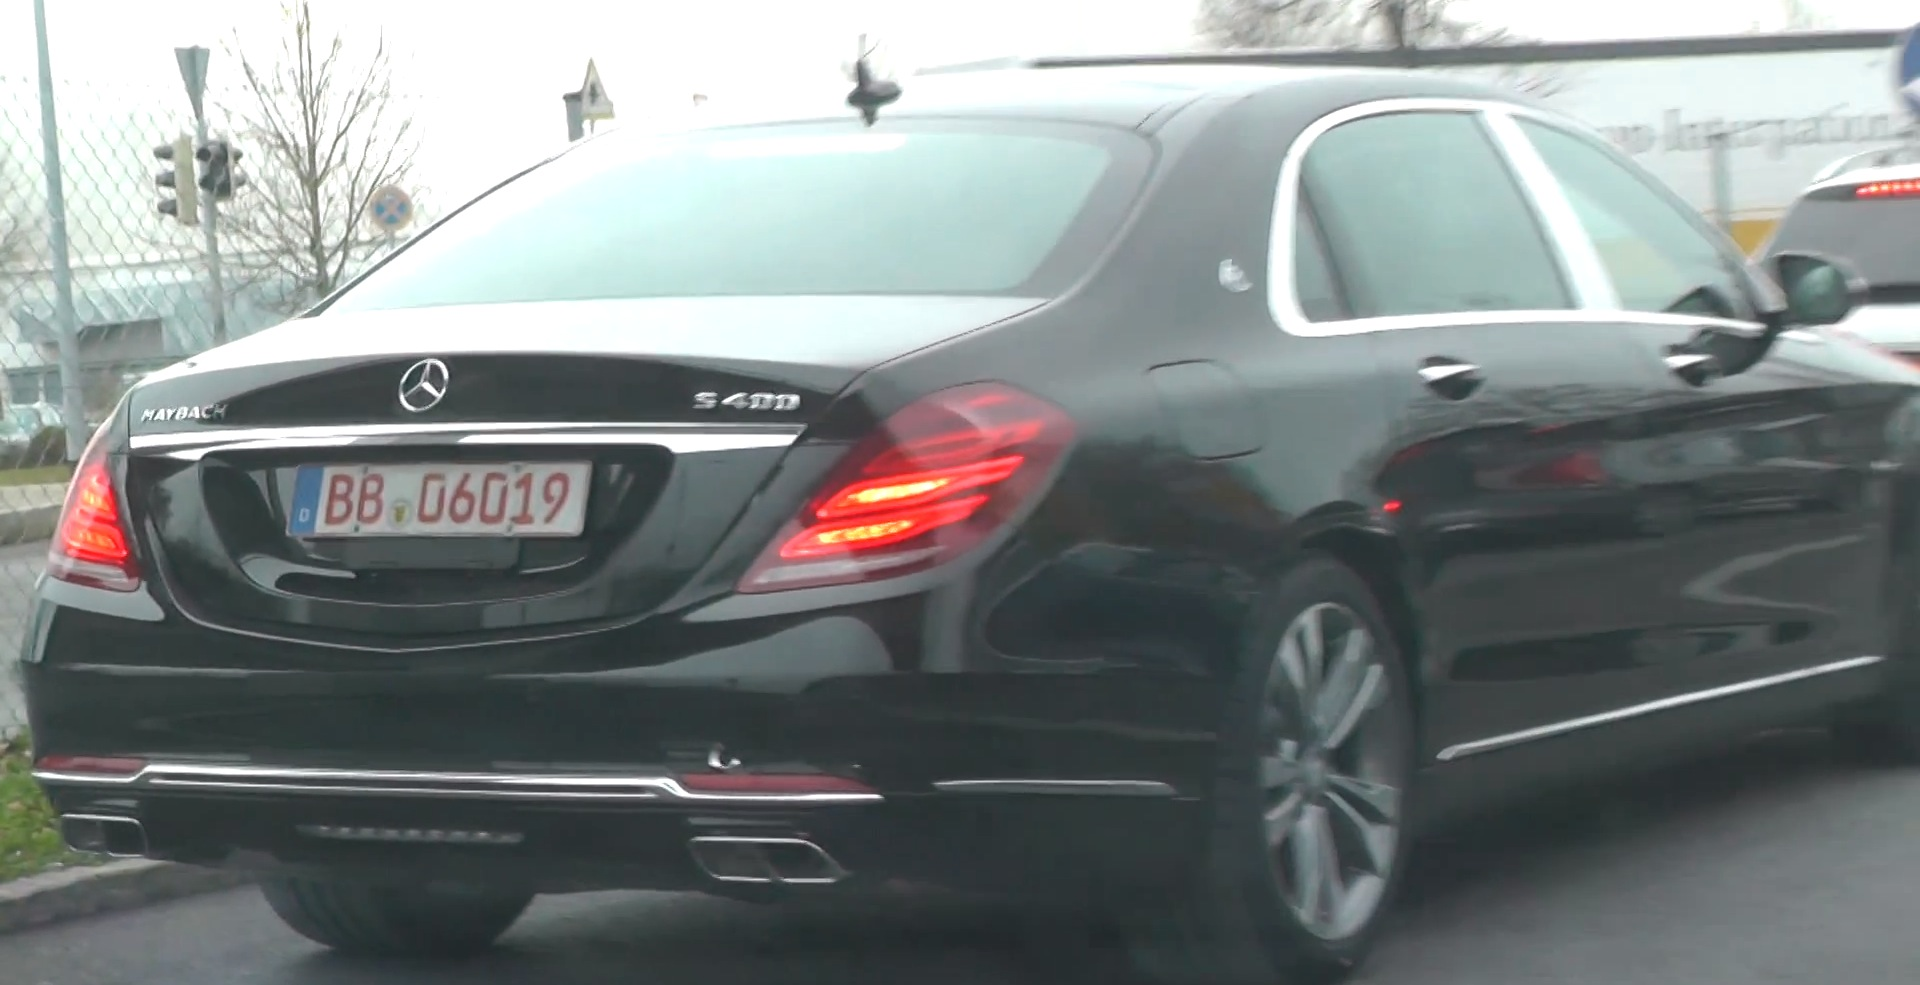 mercedes-maybach s400 spotted testing v6 engine in stuttgart